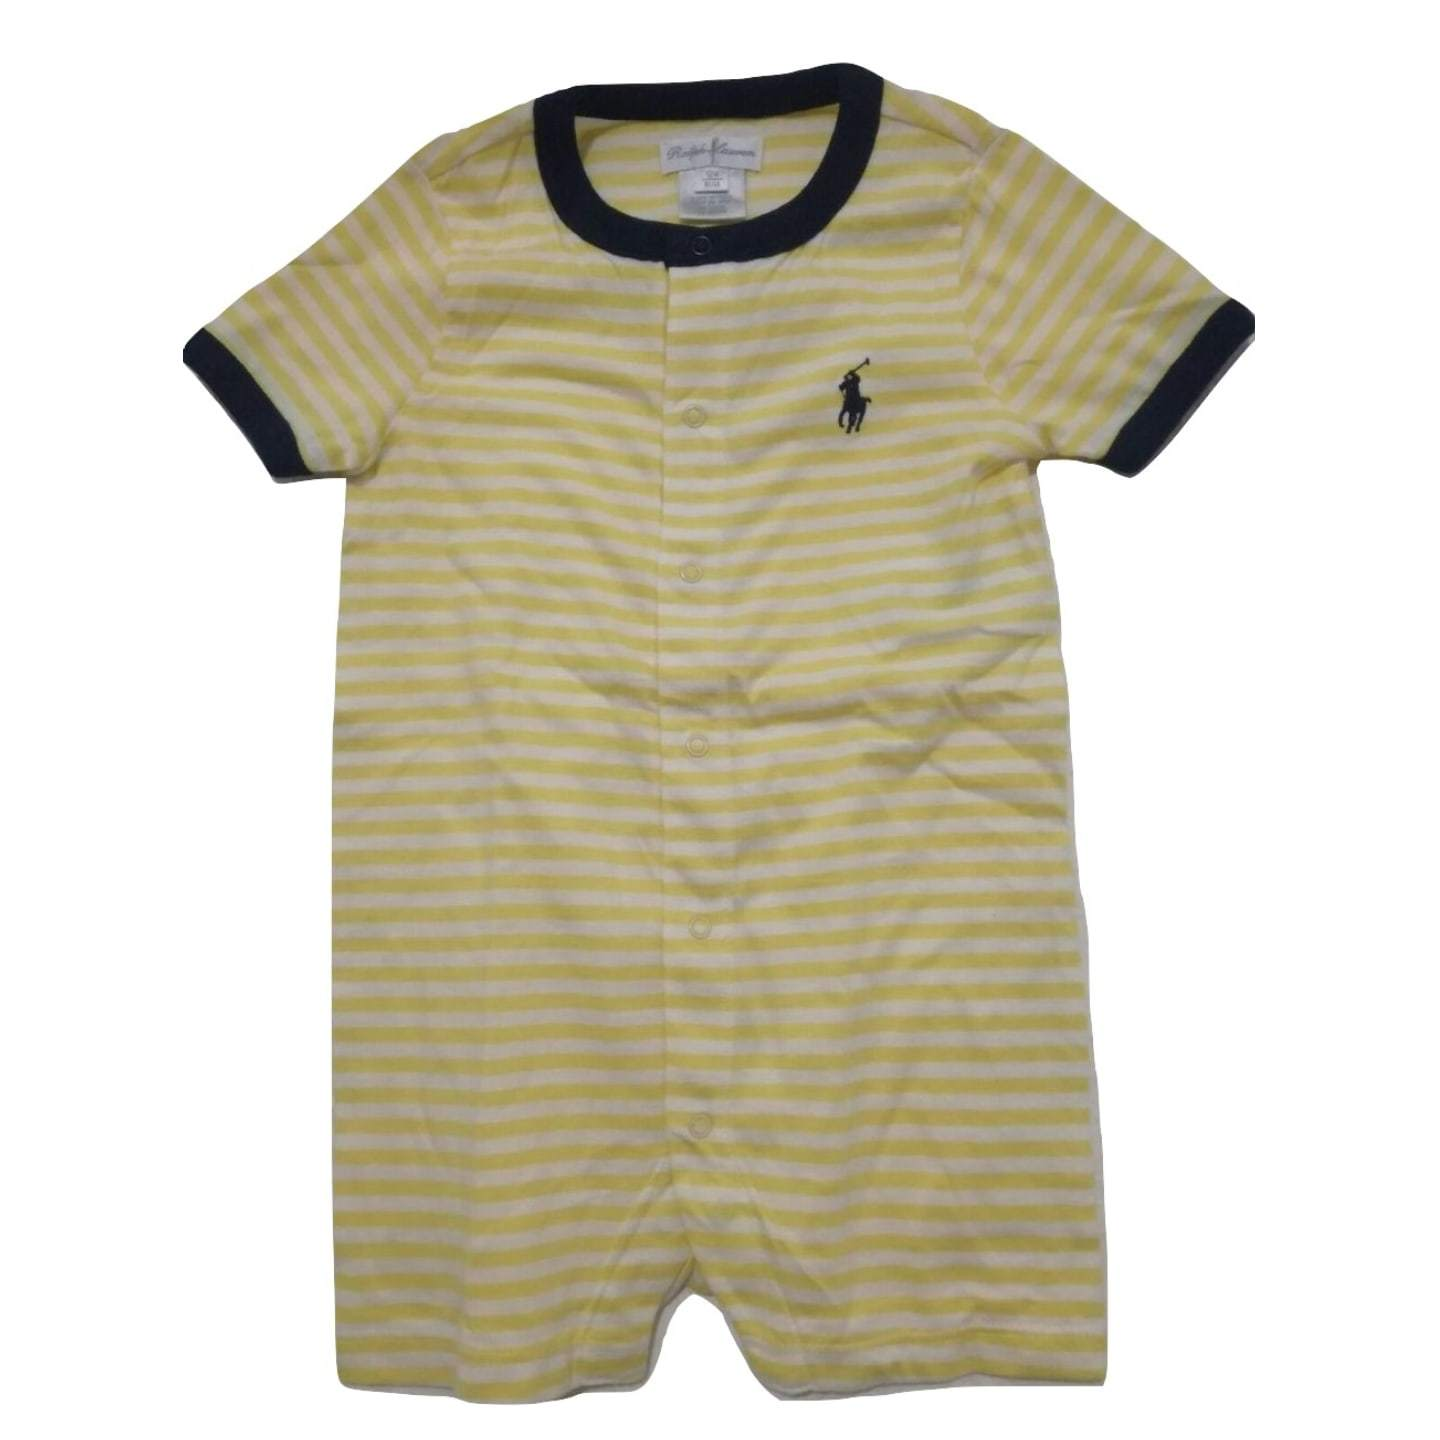 Polo by  Ralph Lauren  Navy round neck Yellow and White Striped Romper - Stockpoint Apparel Outlet